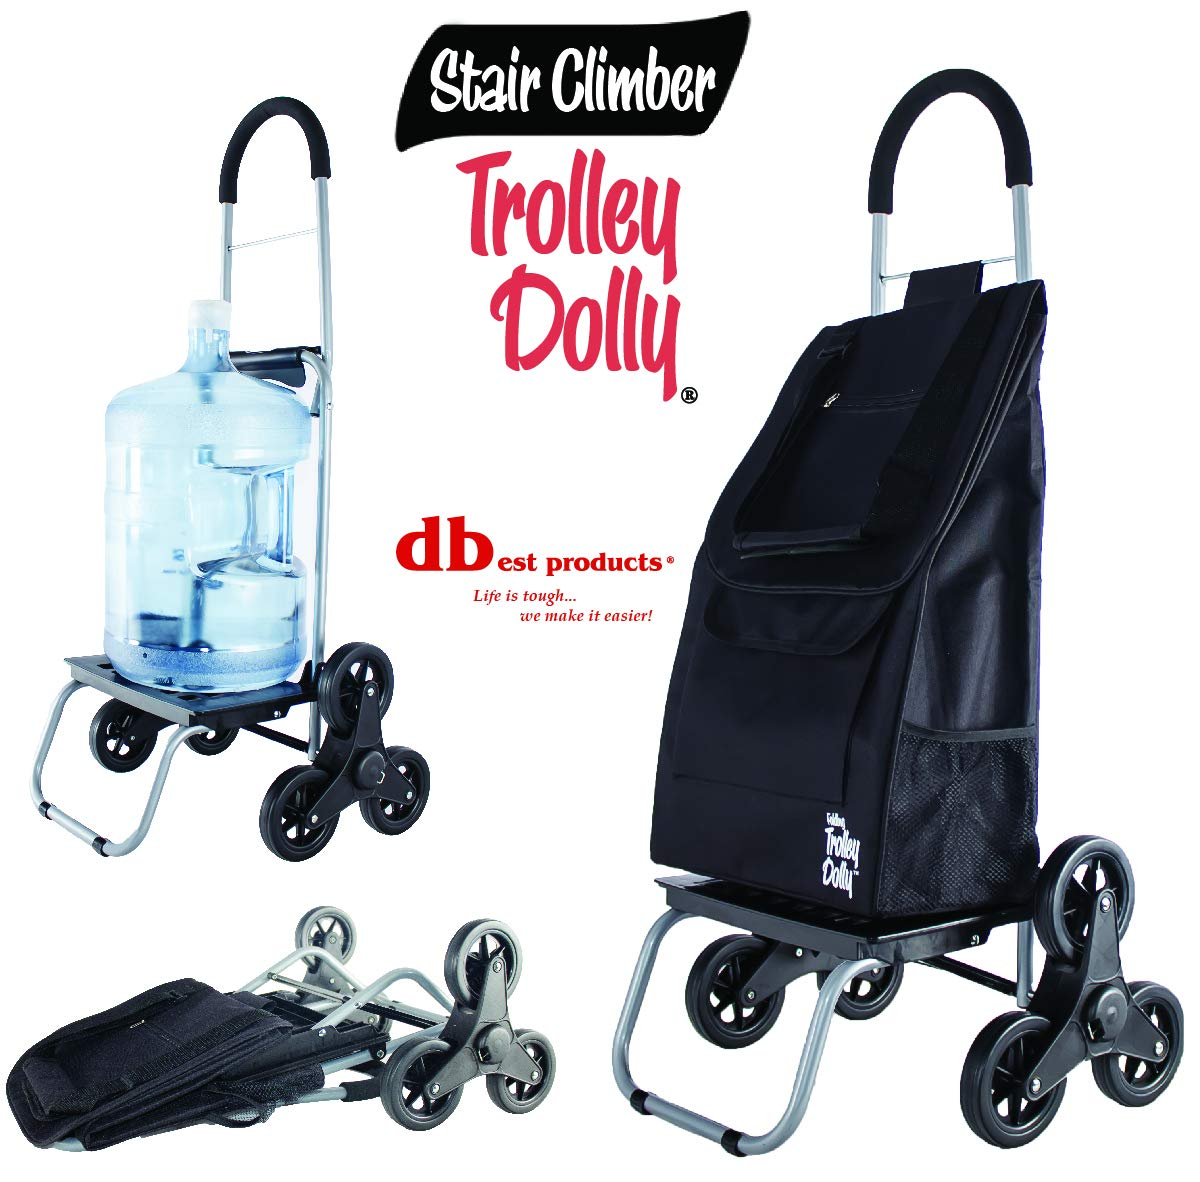 Dbest products Stair Climber Trolley Dolly